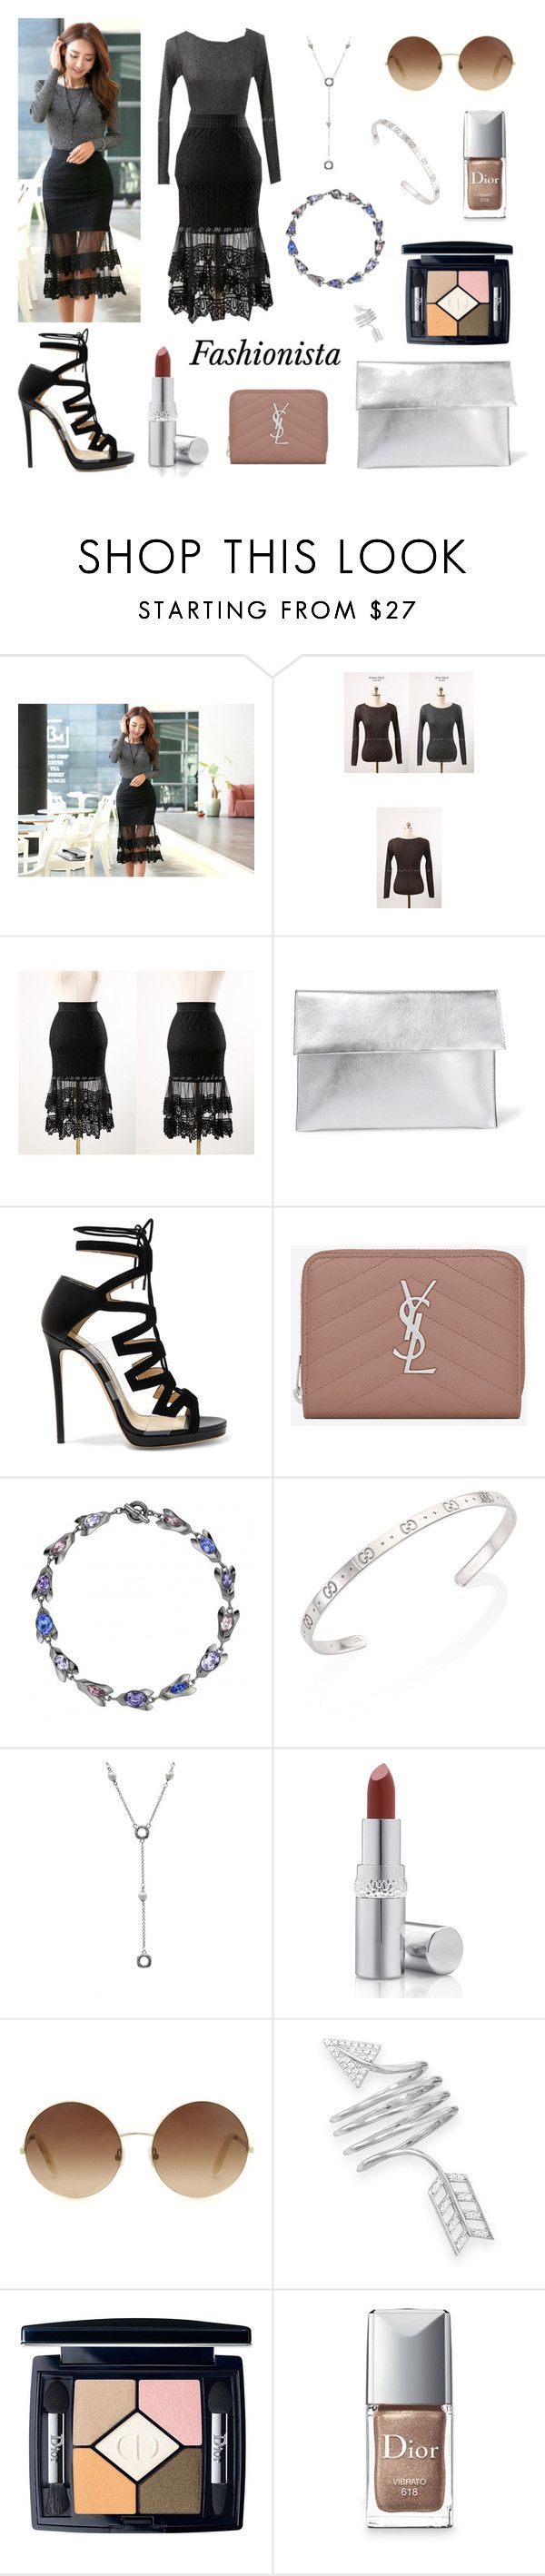 Styleonme_See-through Lace Flounced Skirt by styleonme-kr on Polyvore featuring Jimmy Choo, Marni, Yves Saint Laurent, Gucci, BillyTheTree, Tiffany & Co., Victoria Beckham, Christian Dior, La Prairie and modern